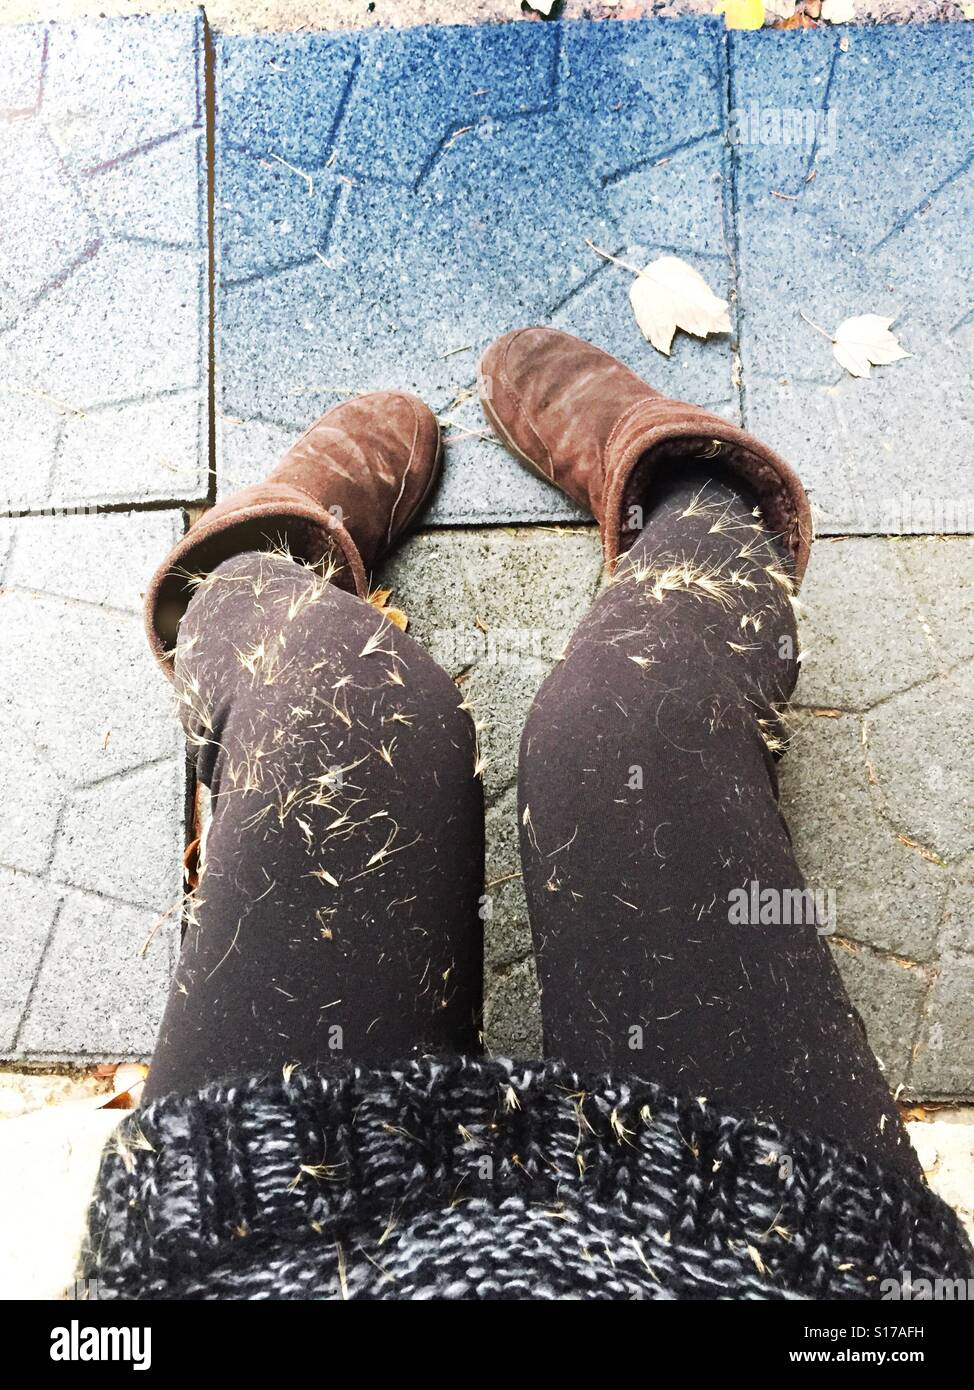 Girl with pants covered in seeds. - Stock Image